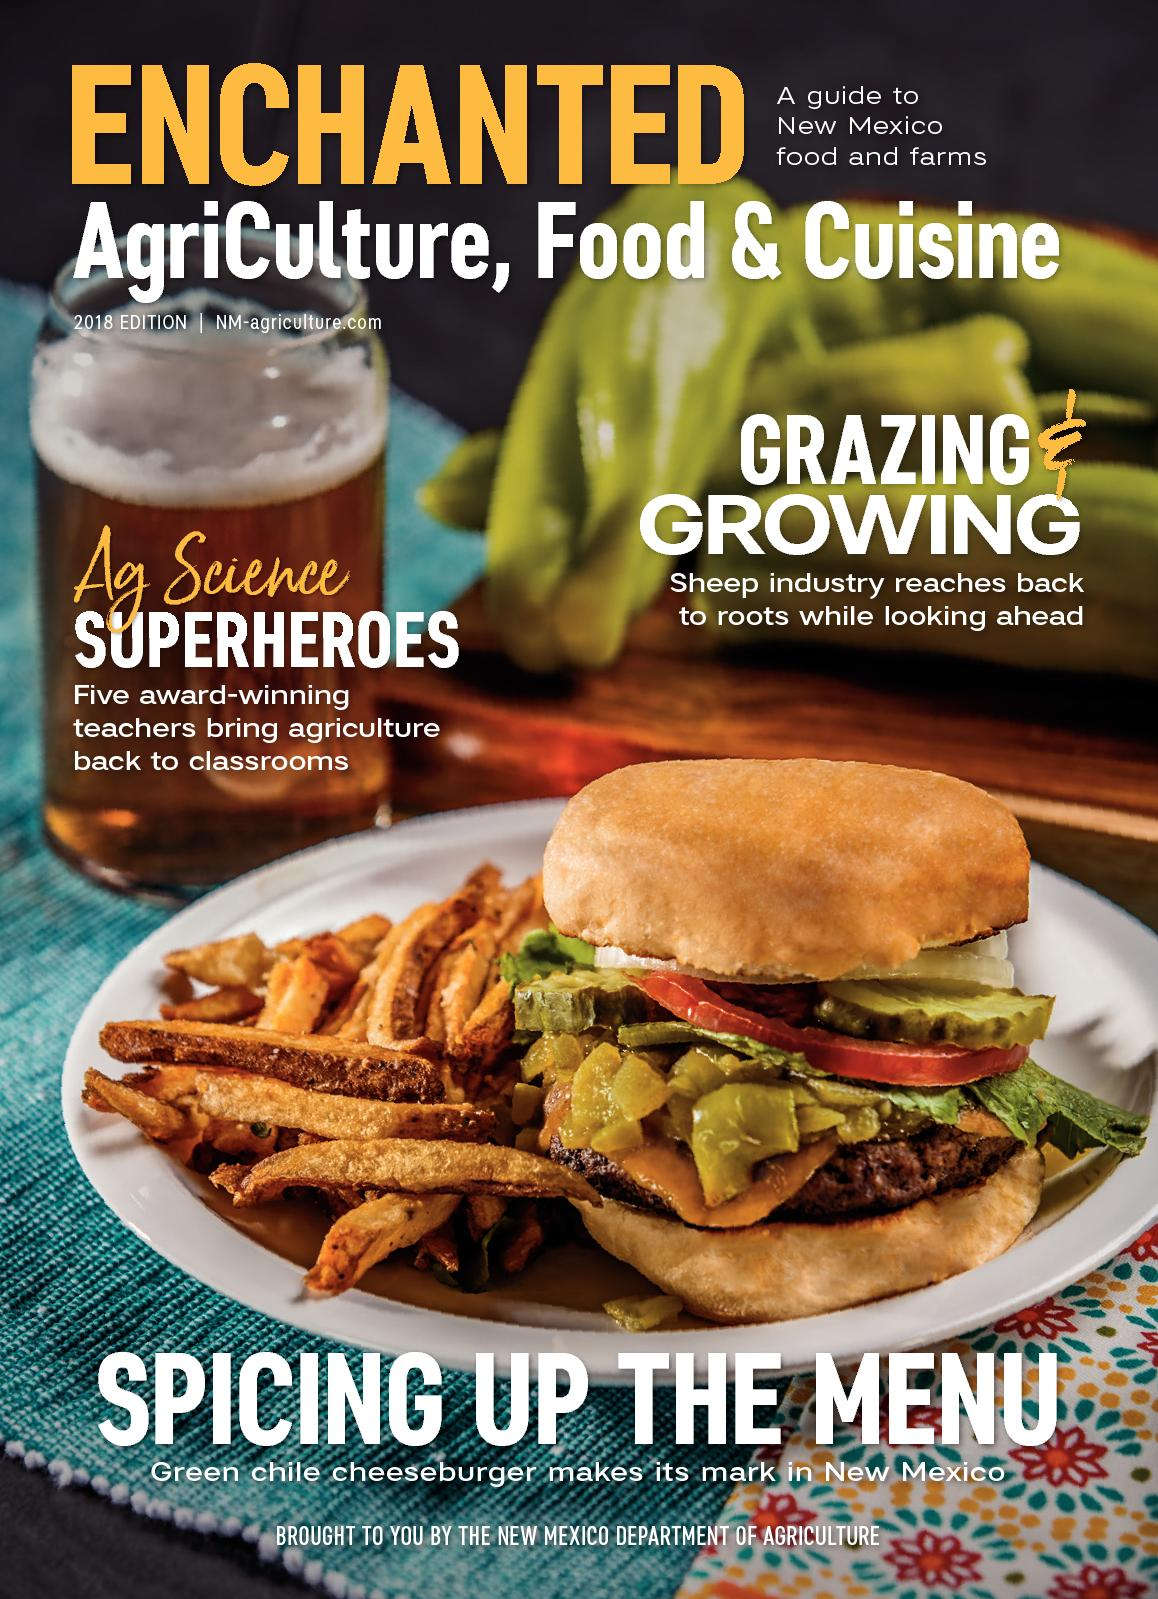 Enchanted AgriCulture, Food & Cuisine